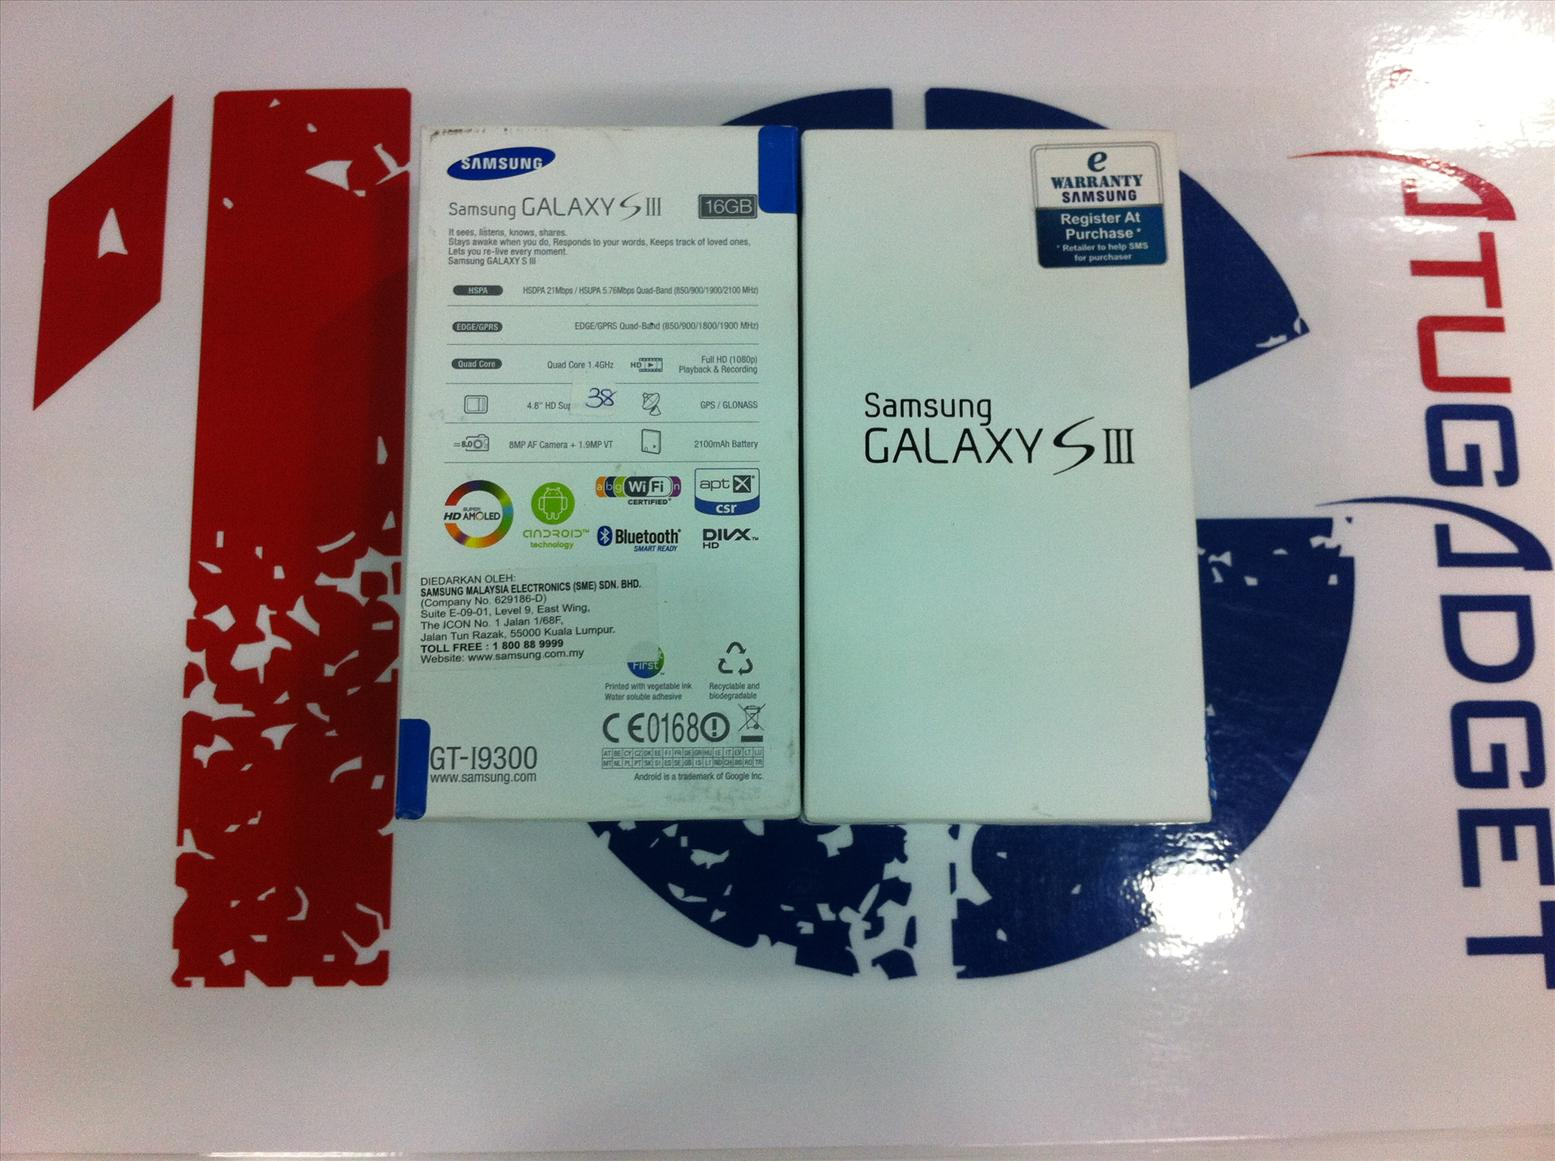 Samsung Galaxy S3 i9300, Live Demo available, walk in to check out